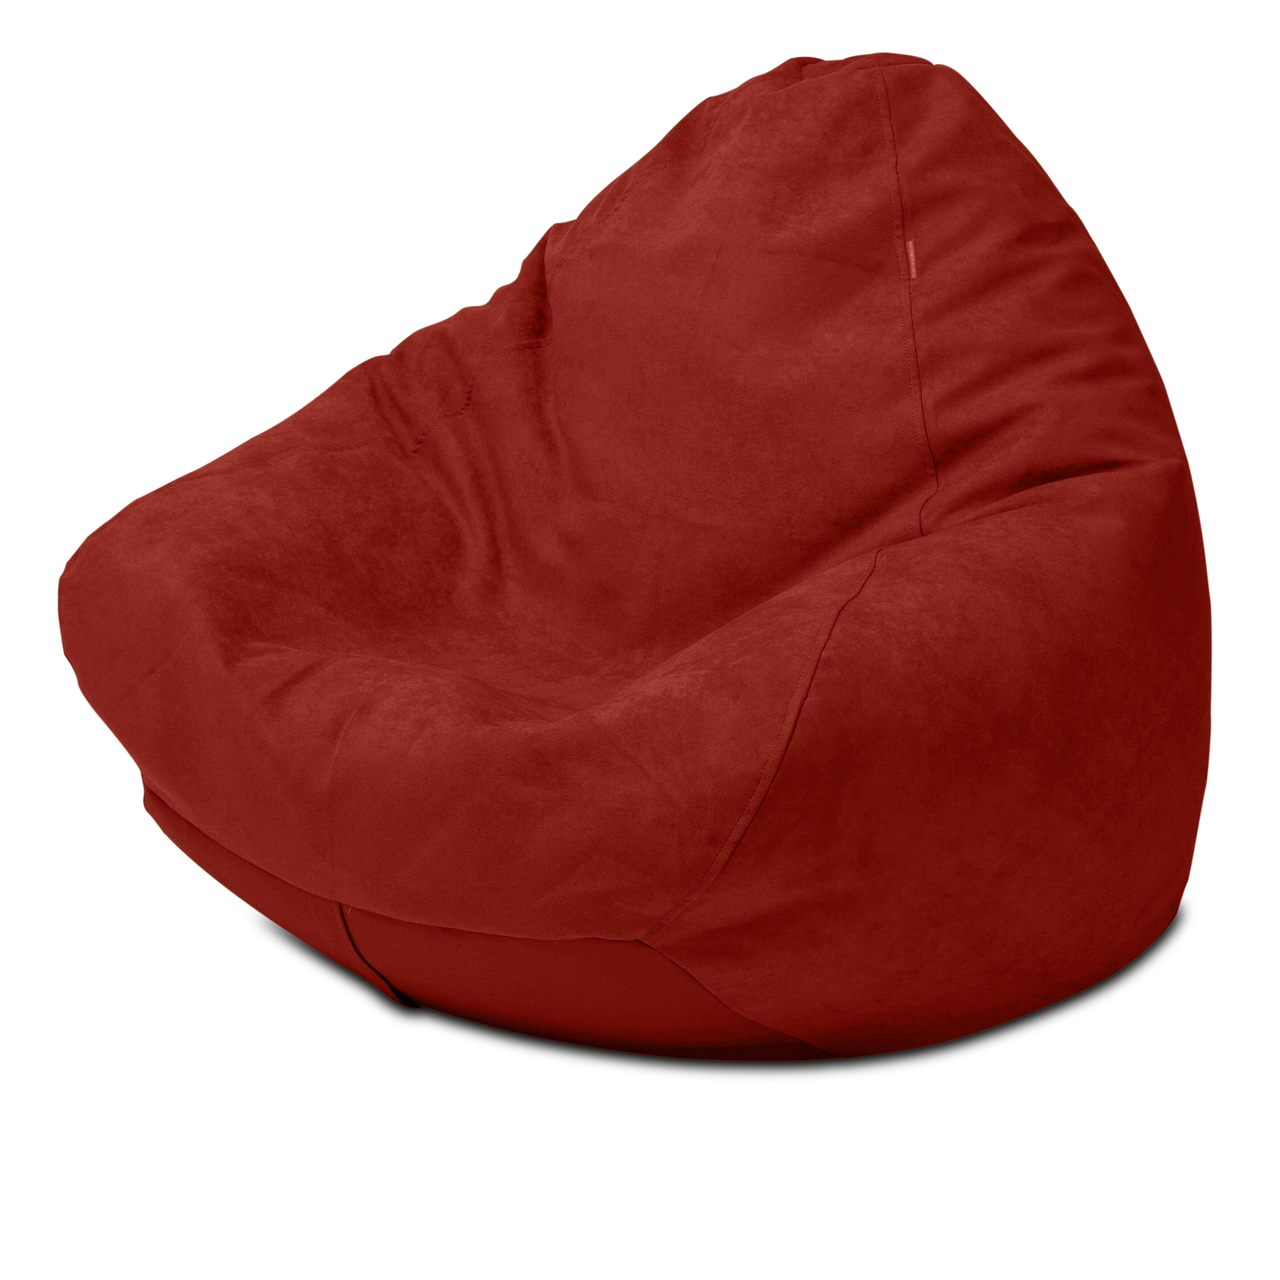 Warwick Macrosuede Queen Size Bean Bag in raspberry